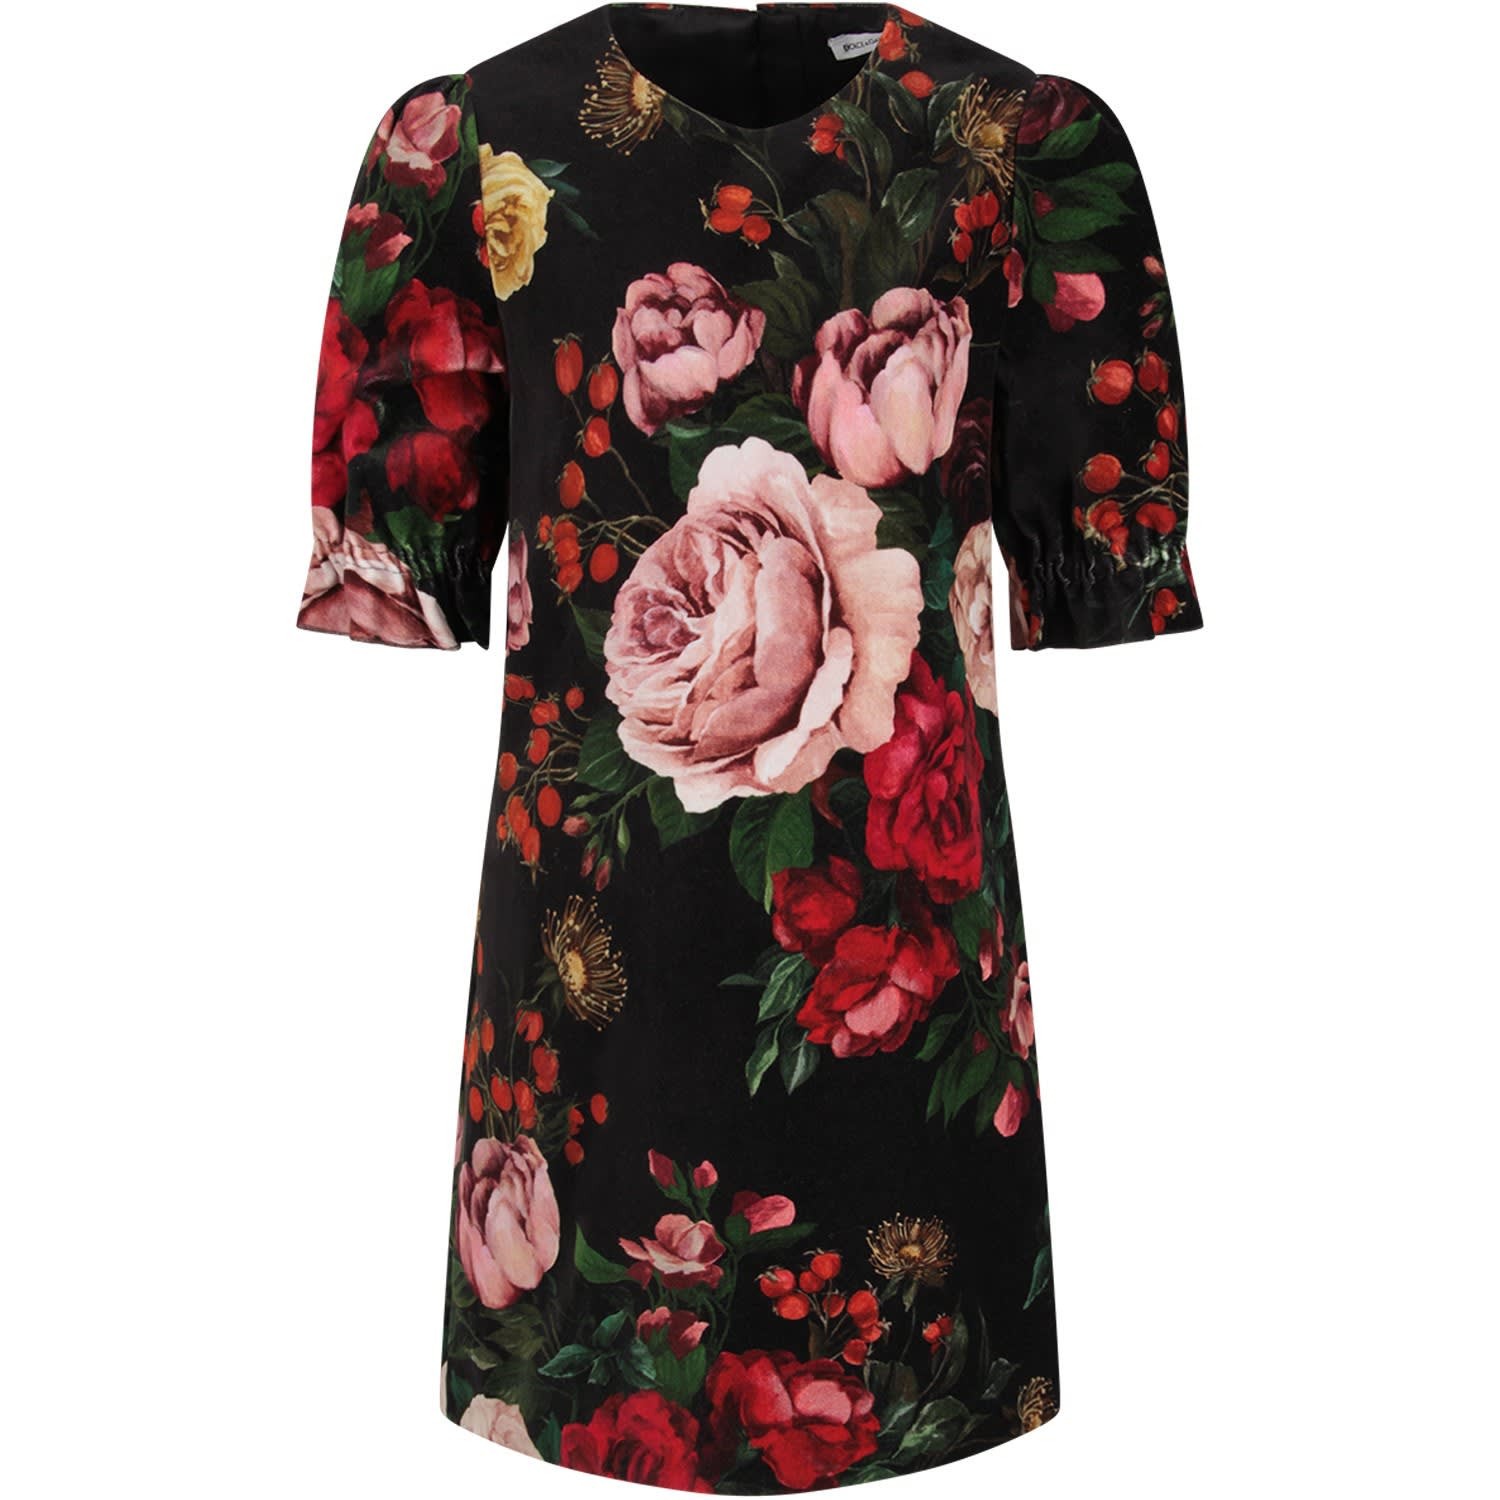 Buy Dolce & Gabbana Black Girl Dress With Colorful Baroque Flowers online, shop Dolce & Gabbana with free shipping